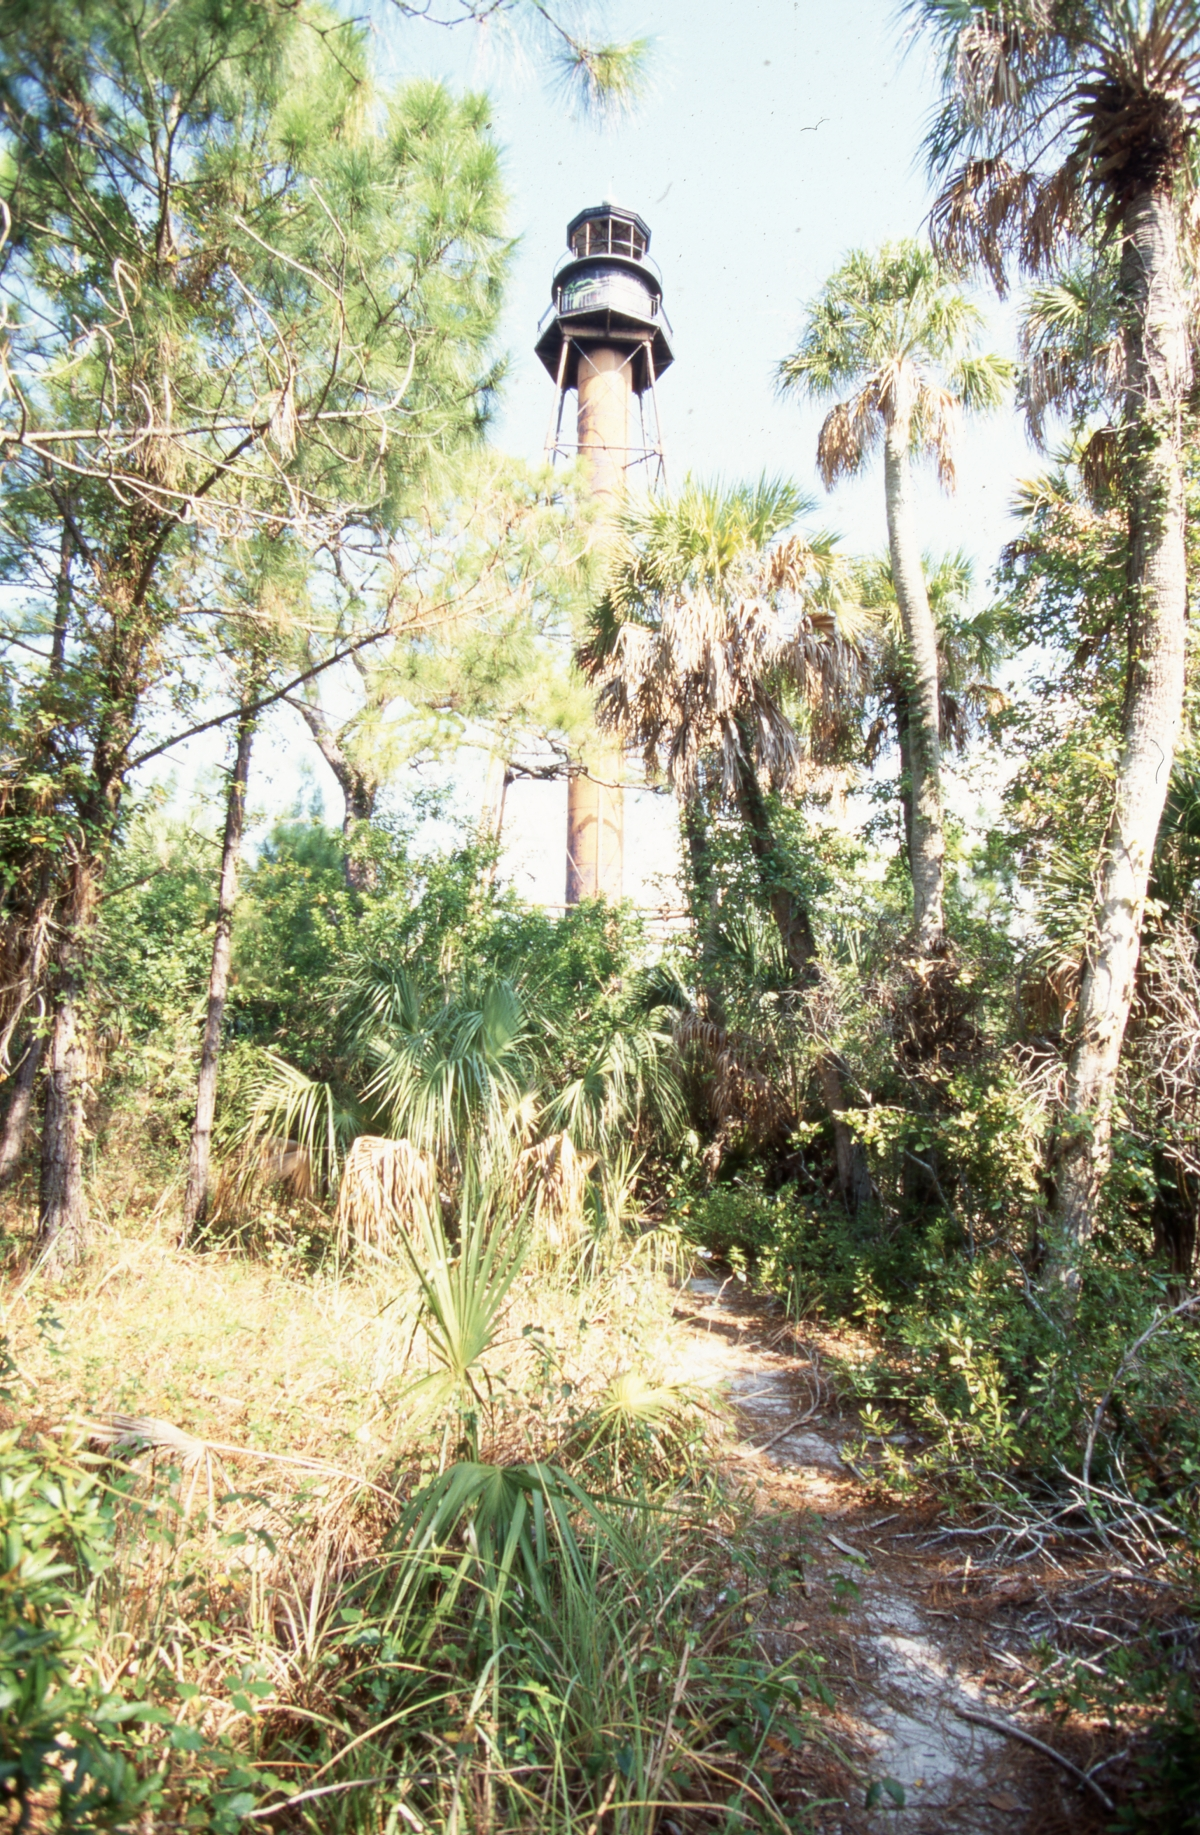 Photographs of the Anclote Key Lighthouse in Pinellas County.